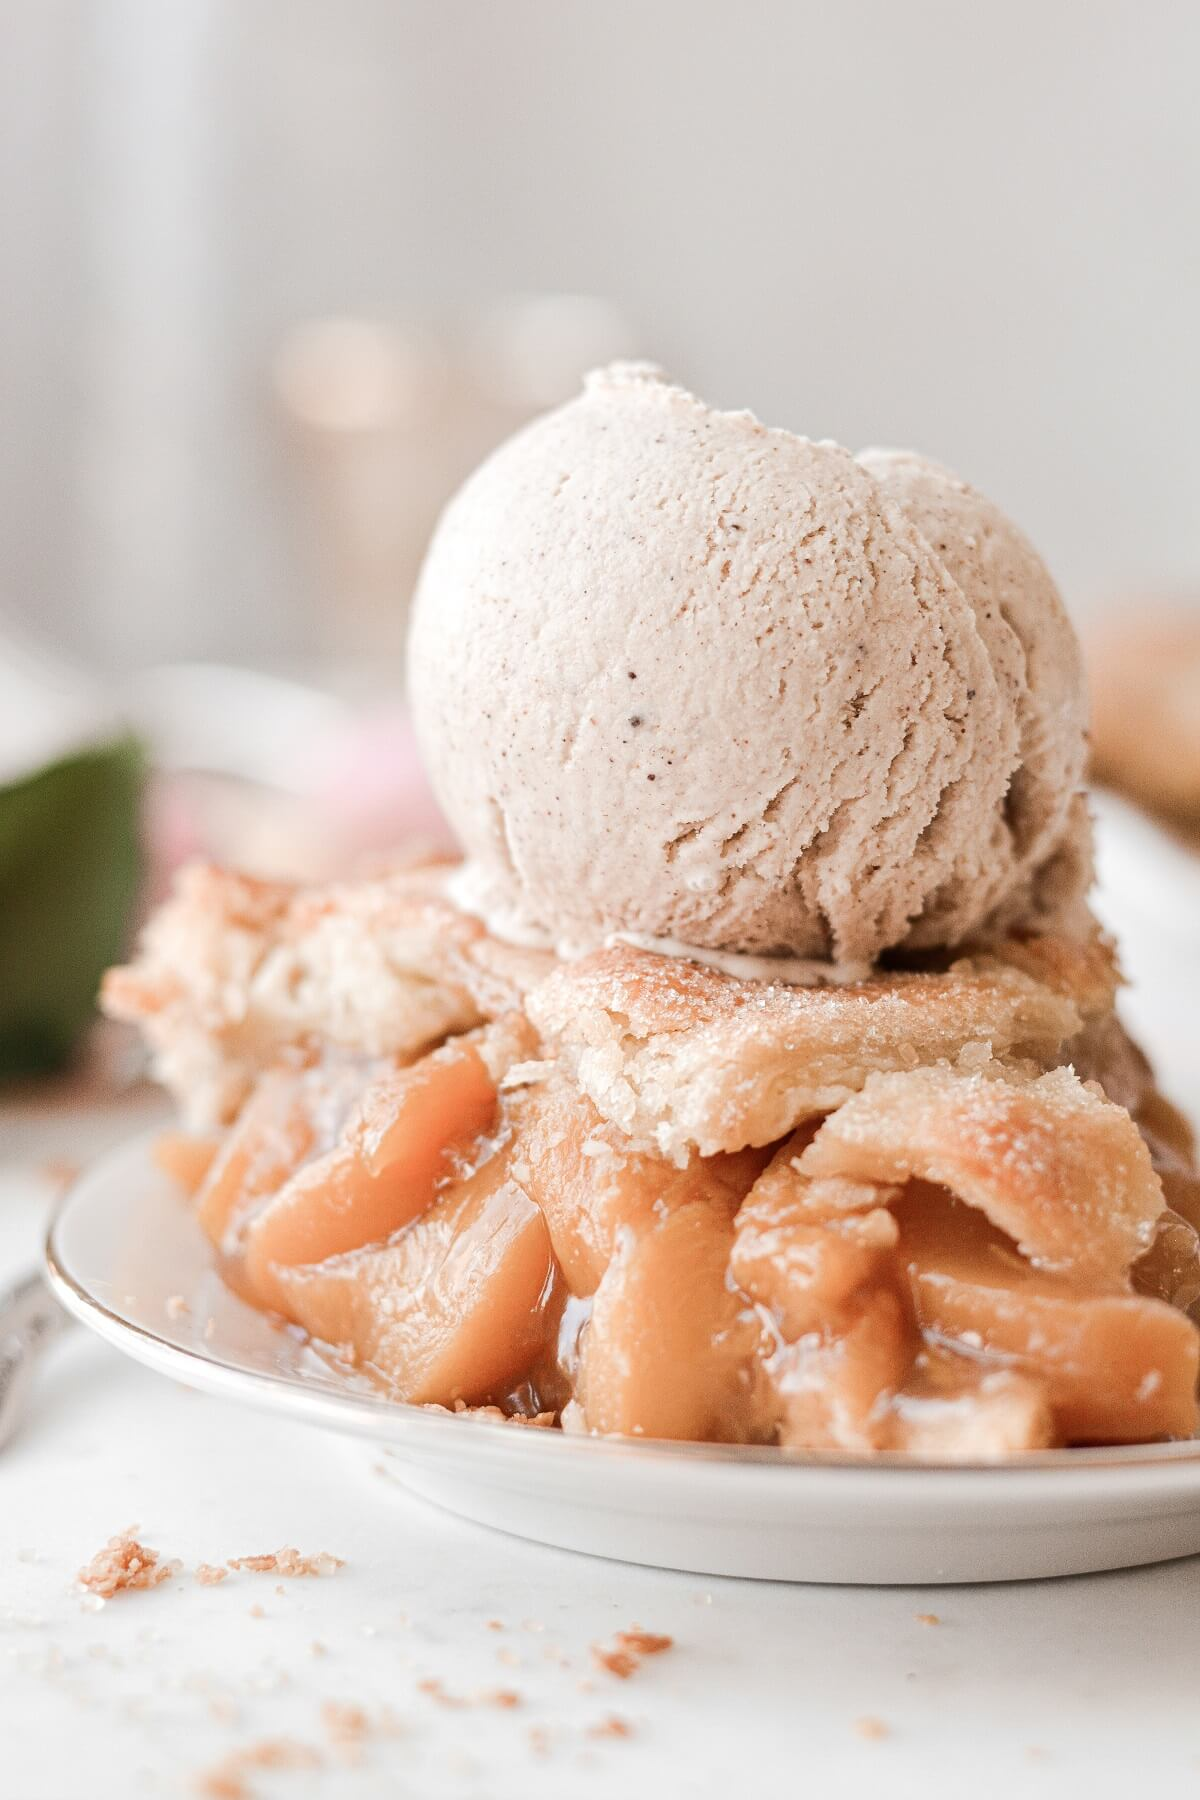 A slice of peach pie topped with a scoop of cinnamon ice cream.